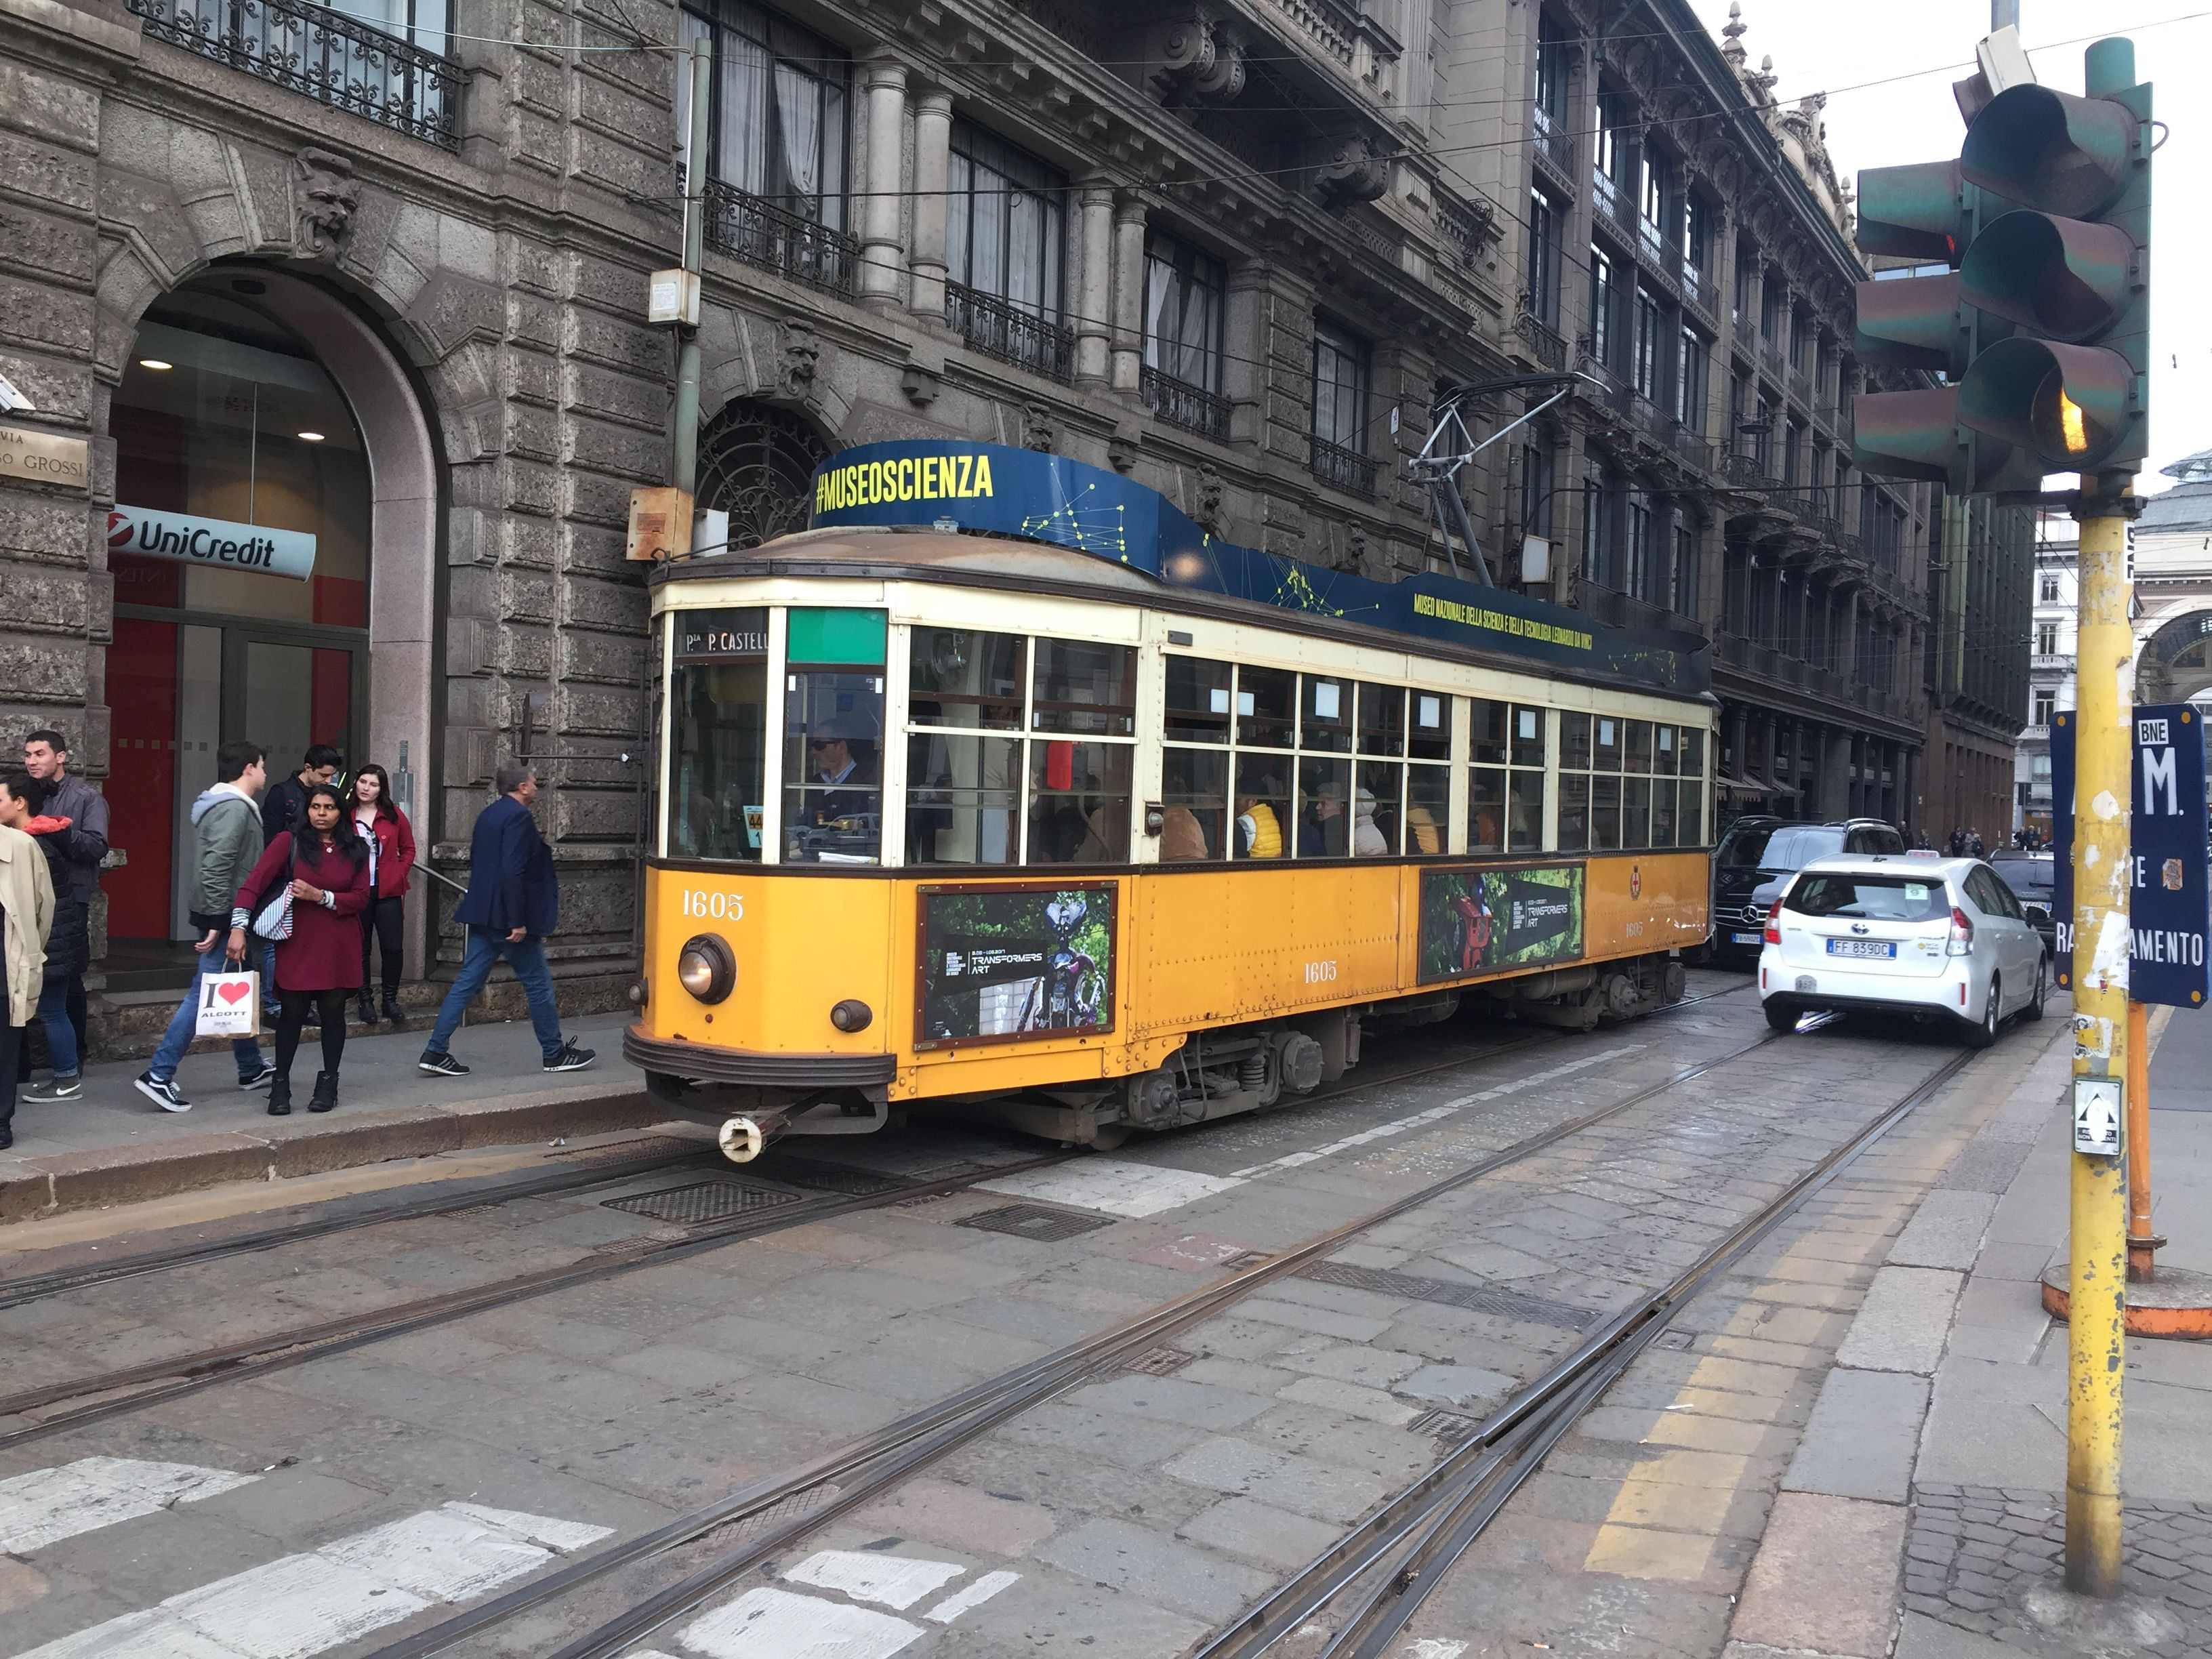 Milano Italy Where World S Oldest Trams Still On Duty Italy World Travel Diary